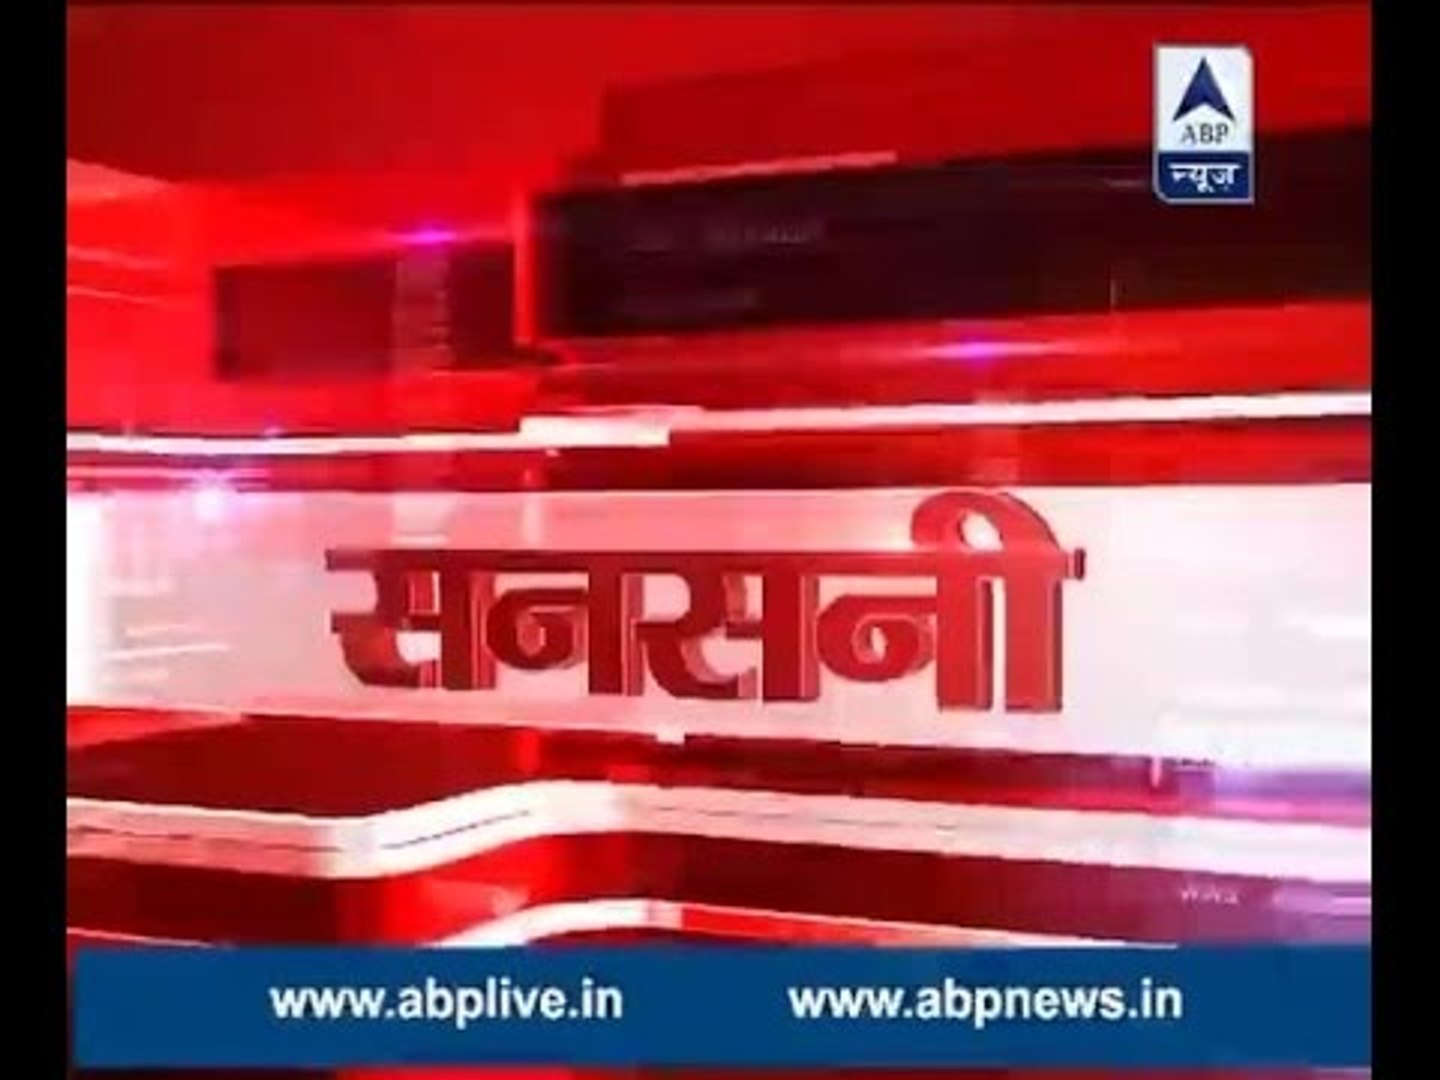 Sansani: 15-year-old kidnapped and gangraped several times in Delhi's Aman Vihar area